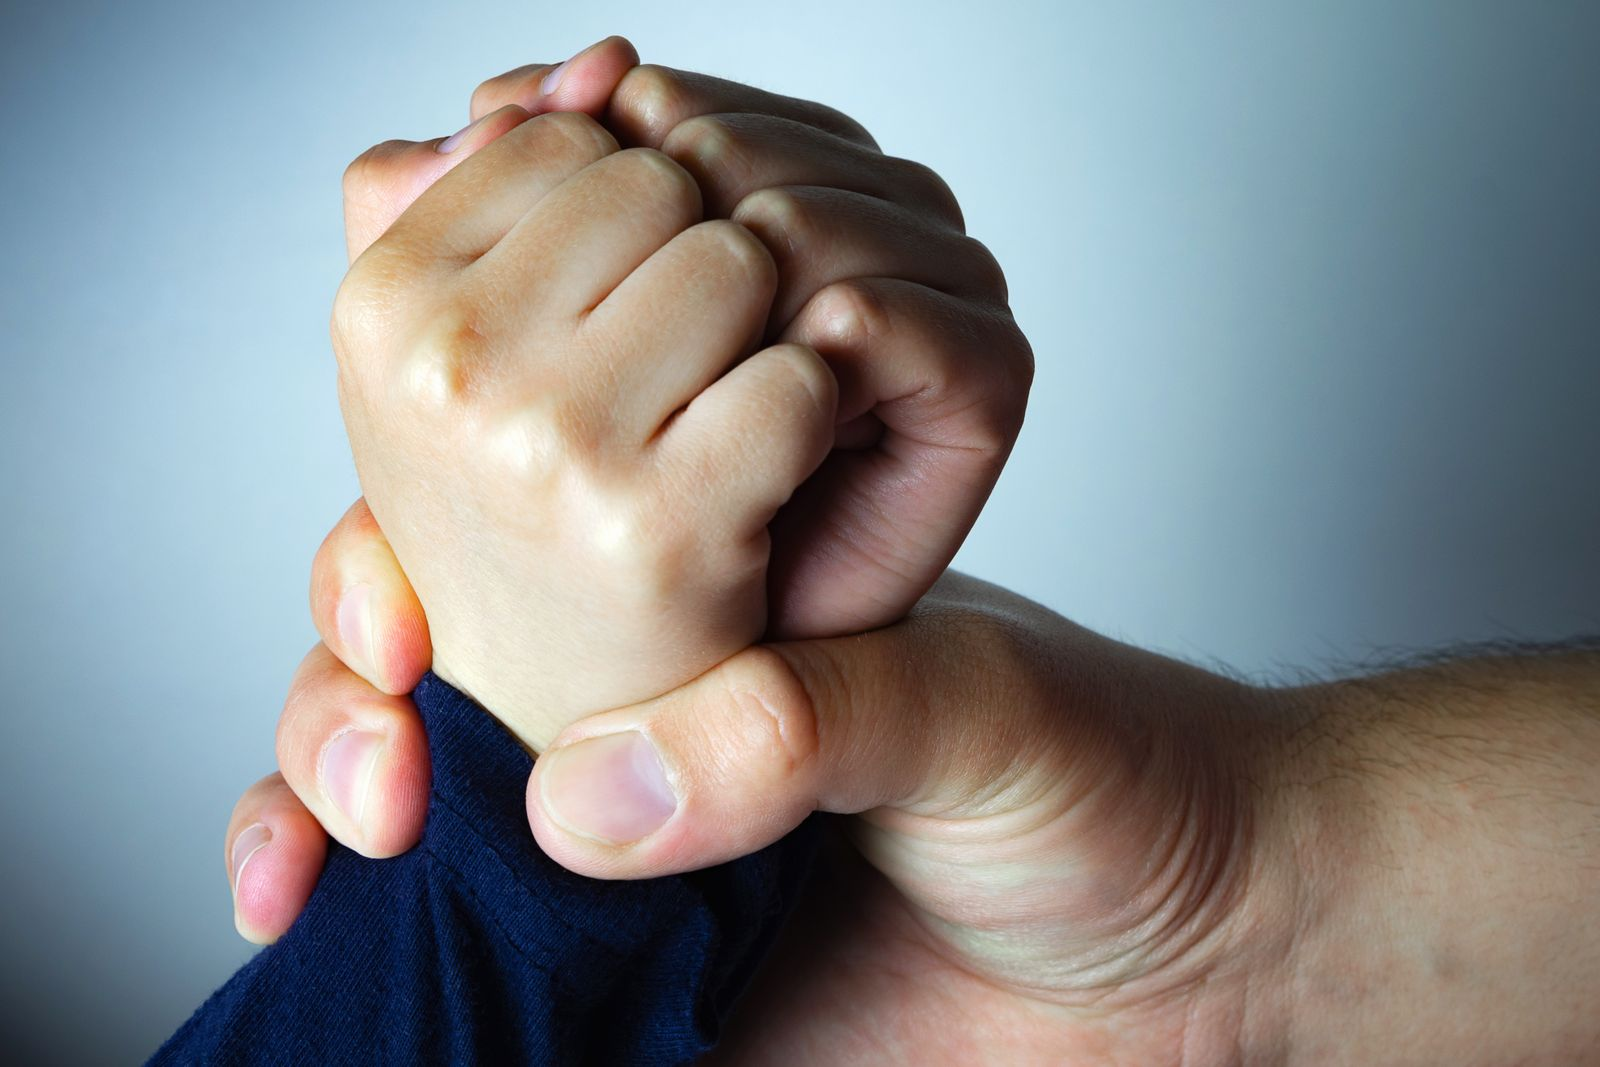 Father roughly holds the hands of his son. Child abuse, domestic violence.